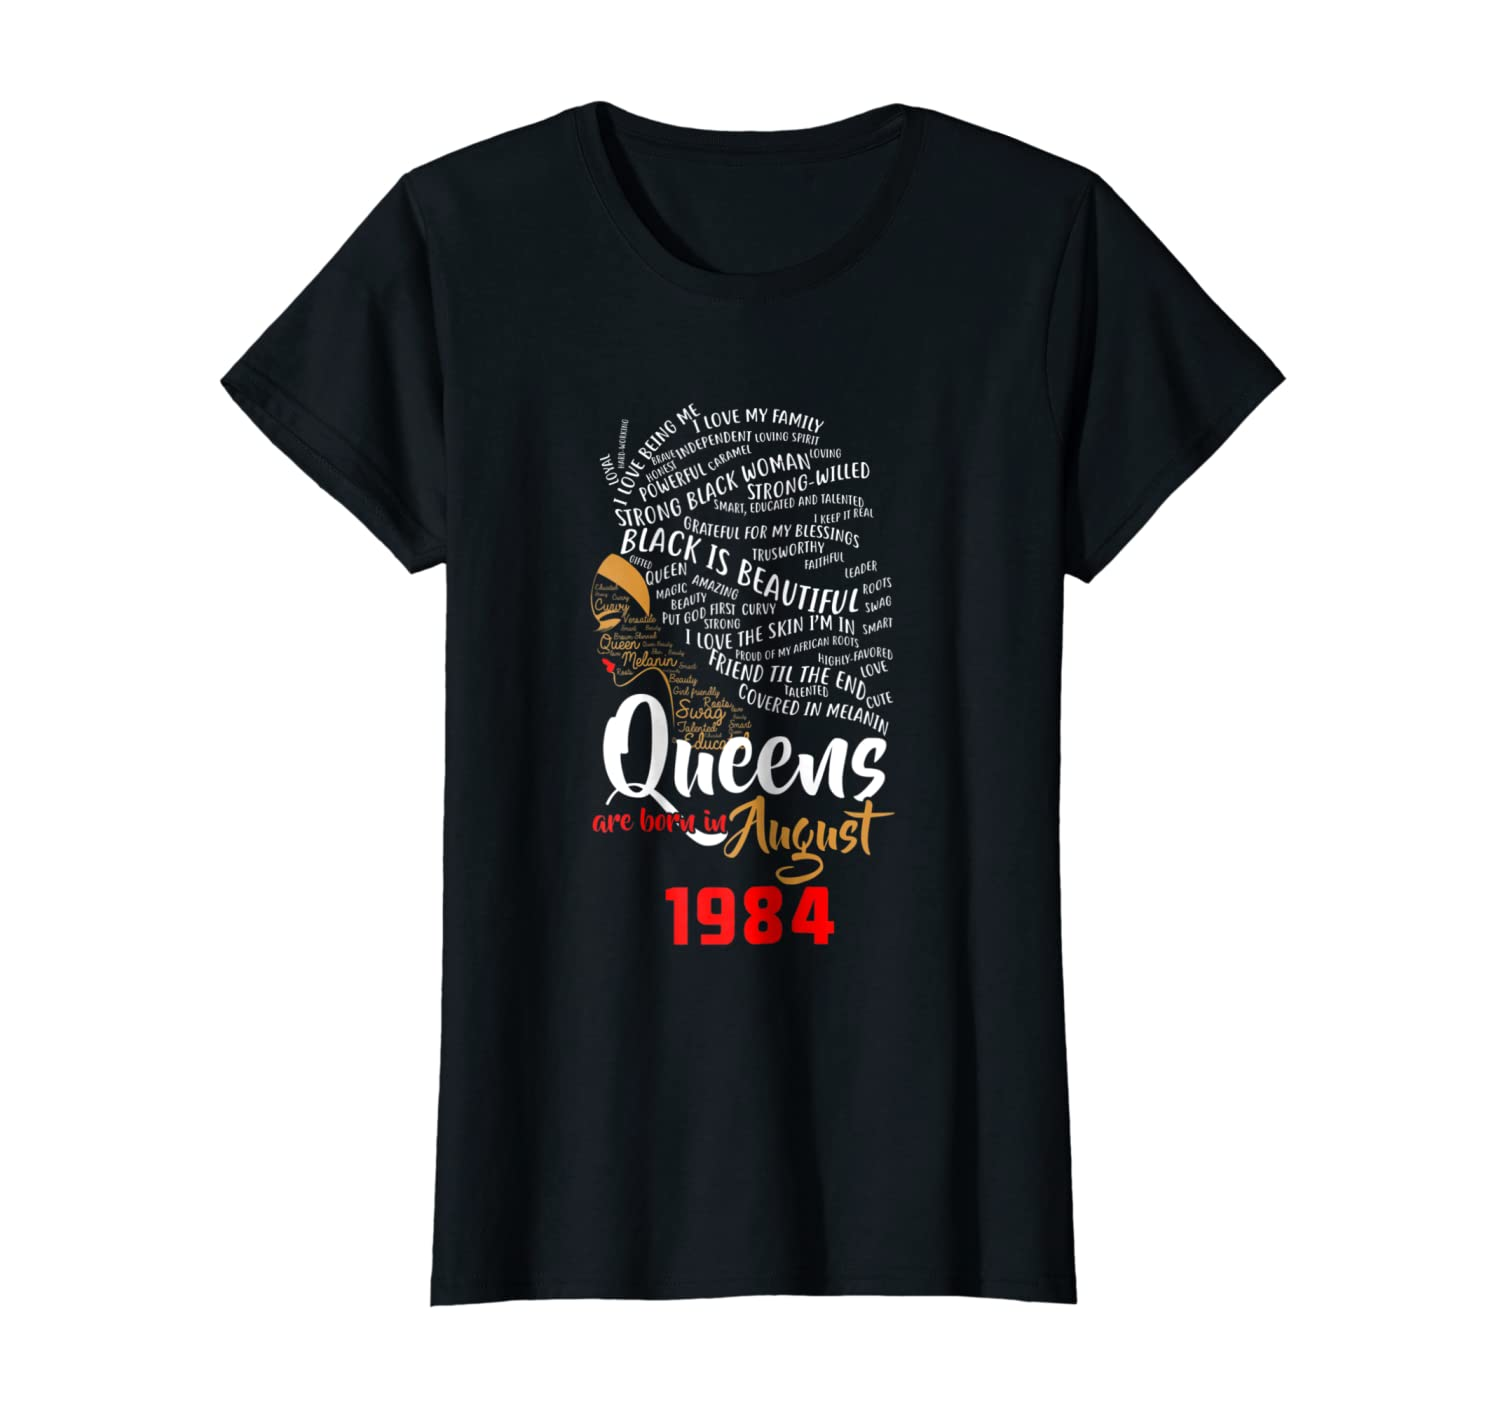 29ad9375c Amazon.com: Black Queens Are Born In AUGUST 1984 34th Birthday T Shirt:  Clothing